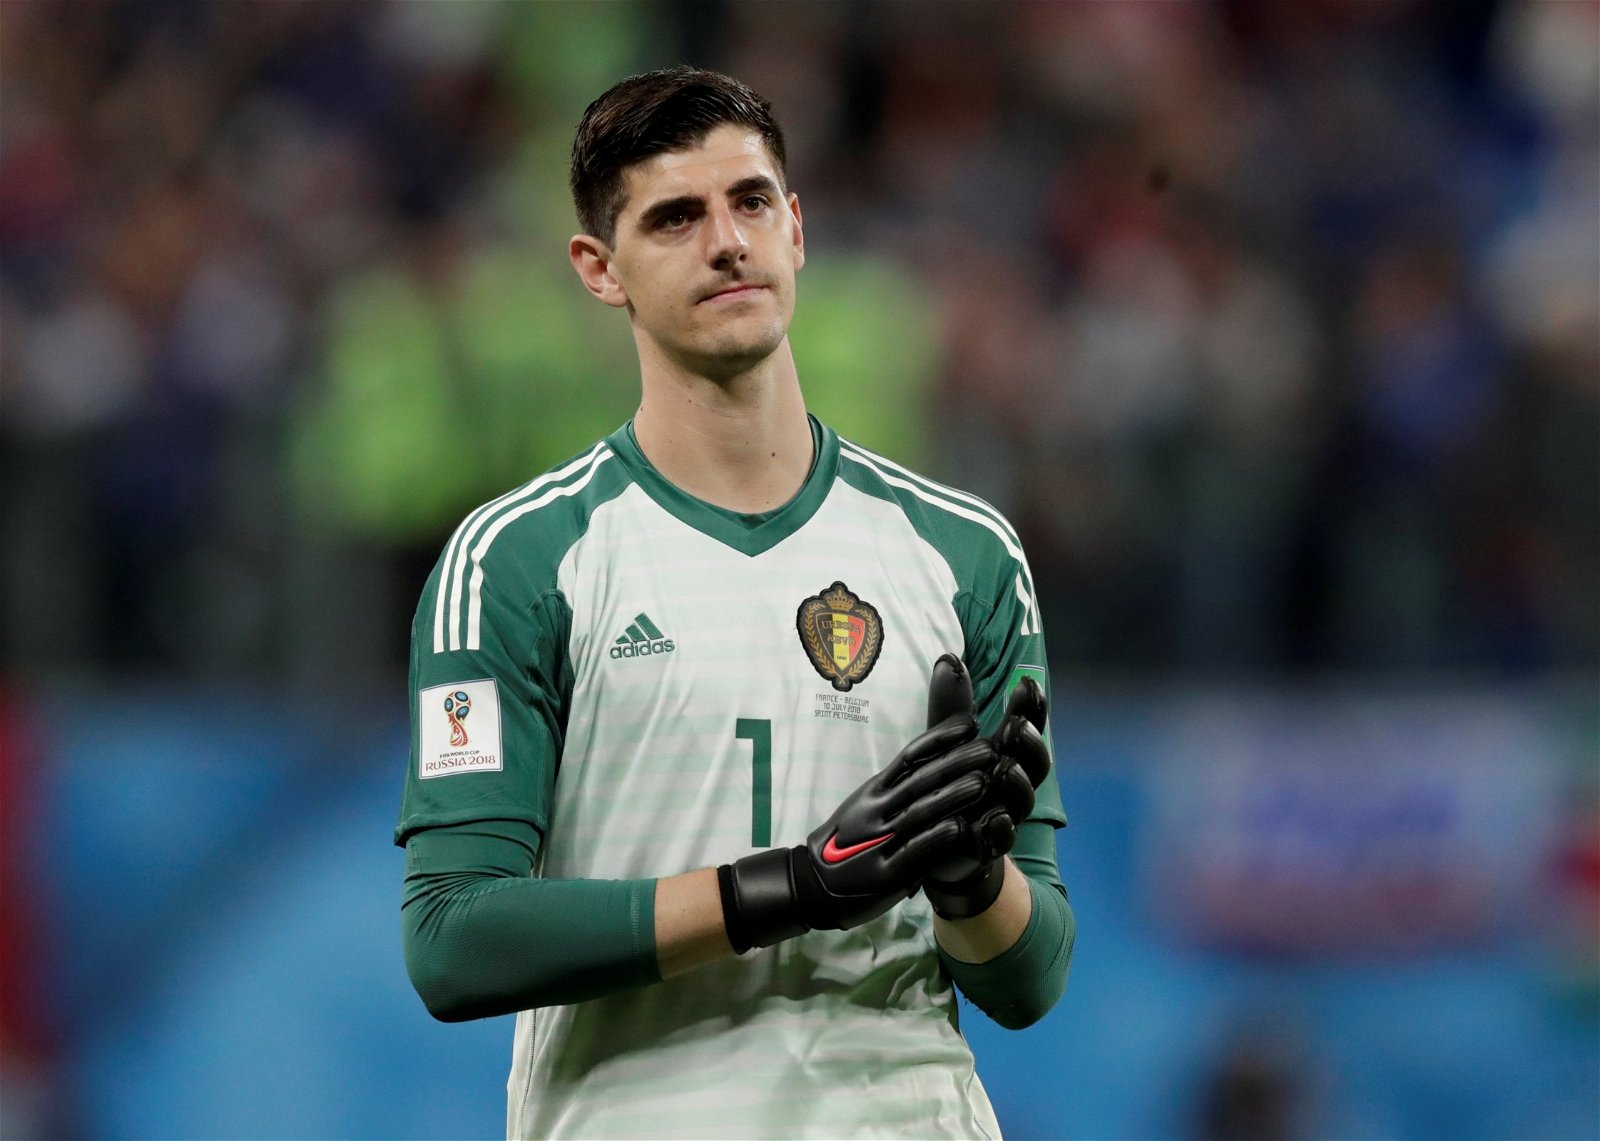 Thibaut Courtois in action for Belgium against France at the World Cup